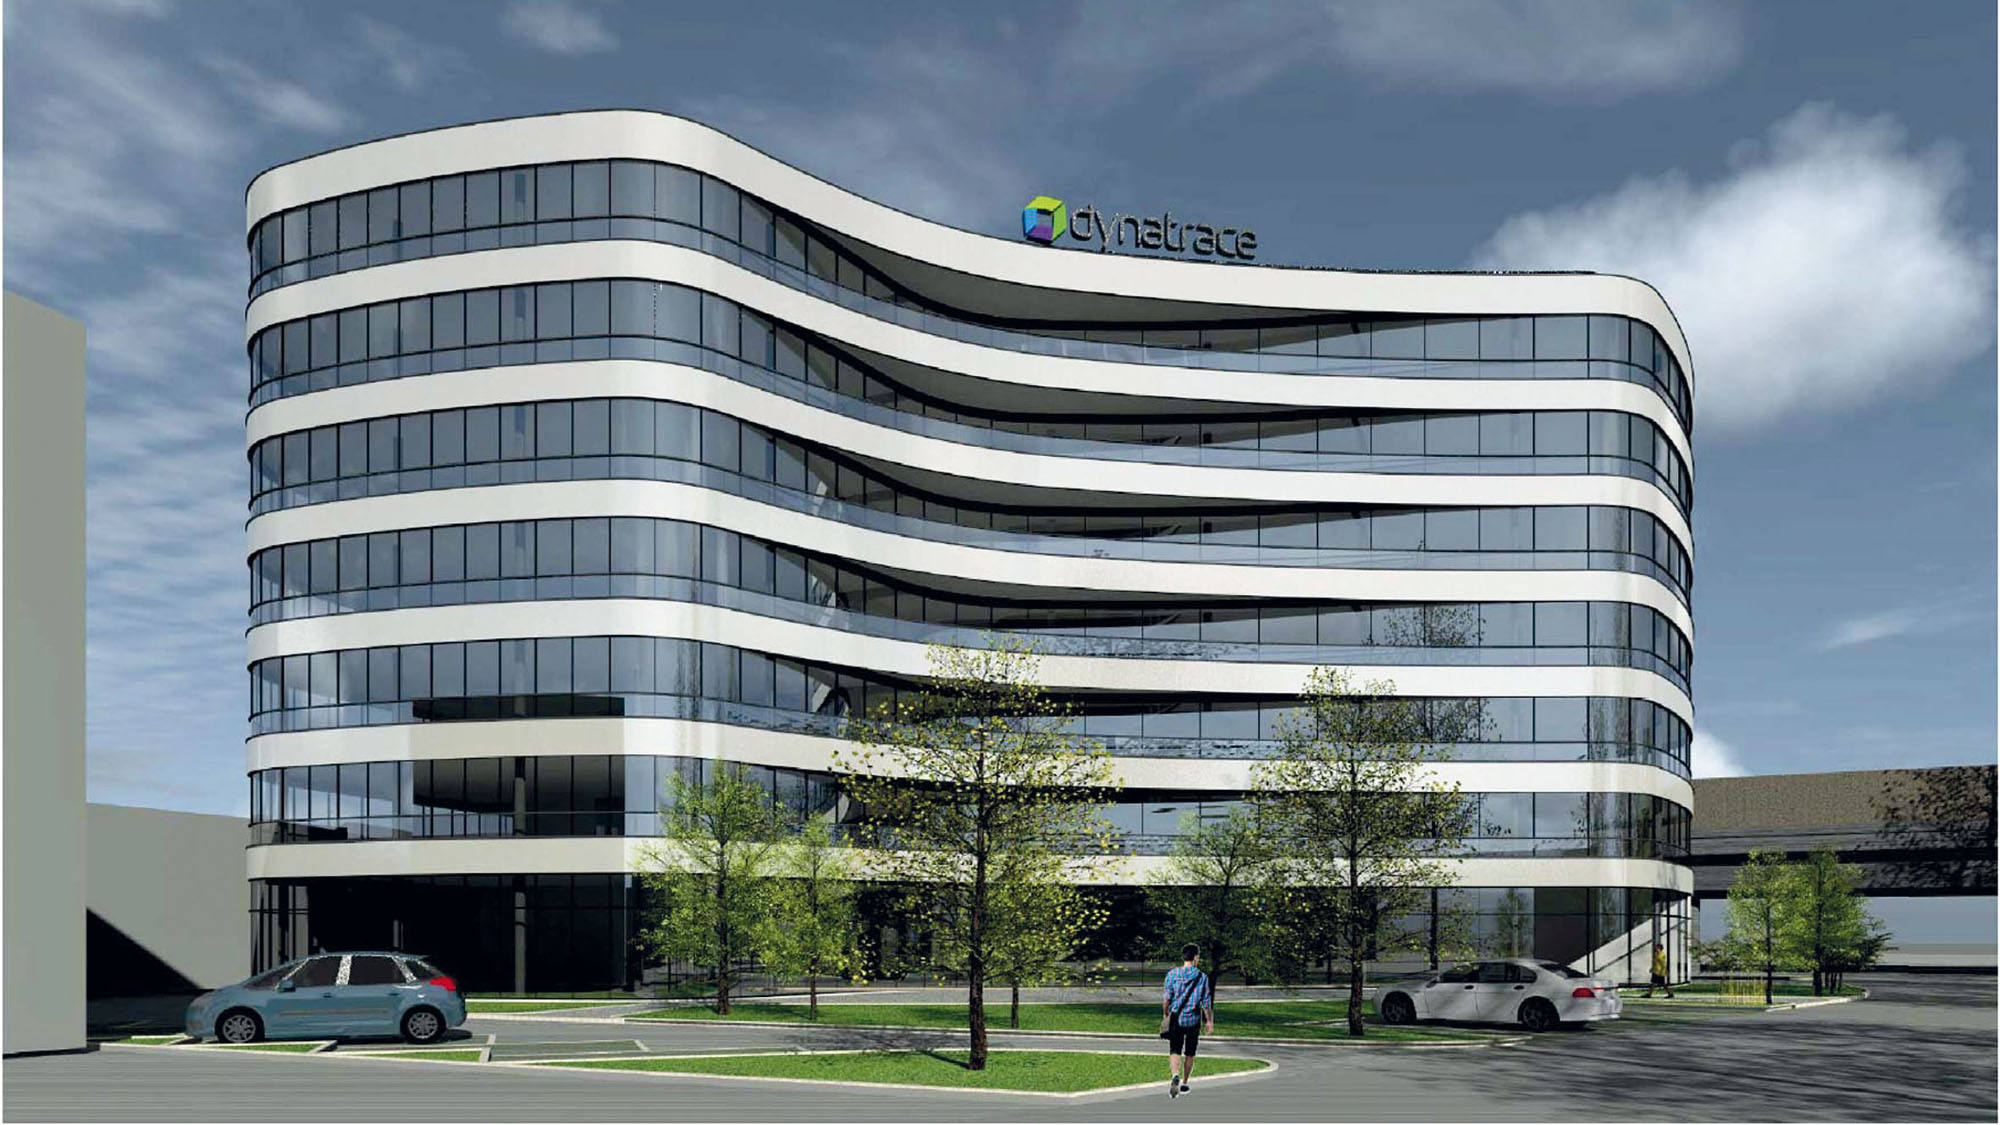 So soll das neue Dynatrace-Headquater aussehen. © PLANET architects /Dynatrace